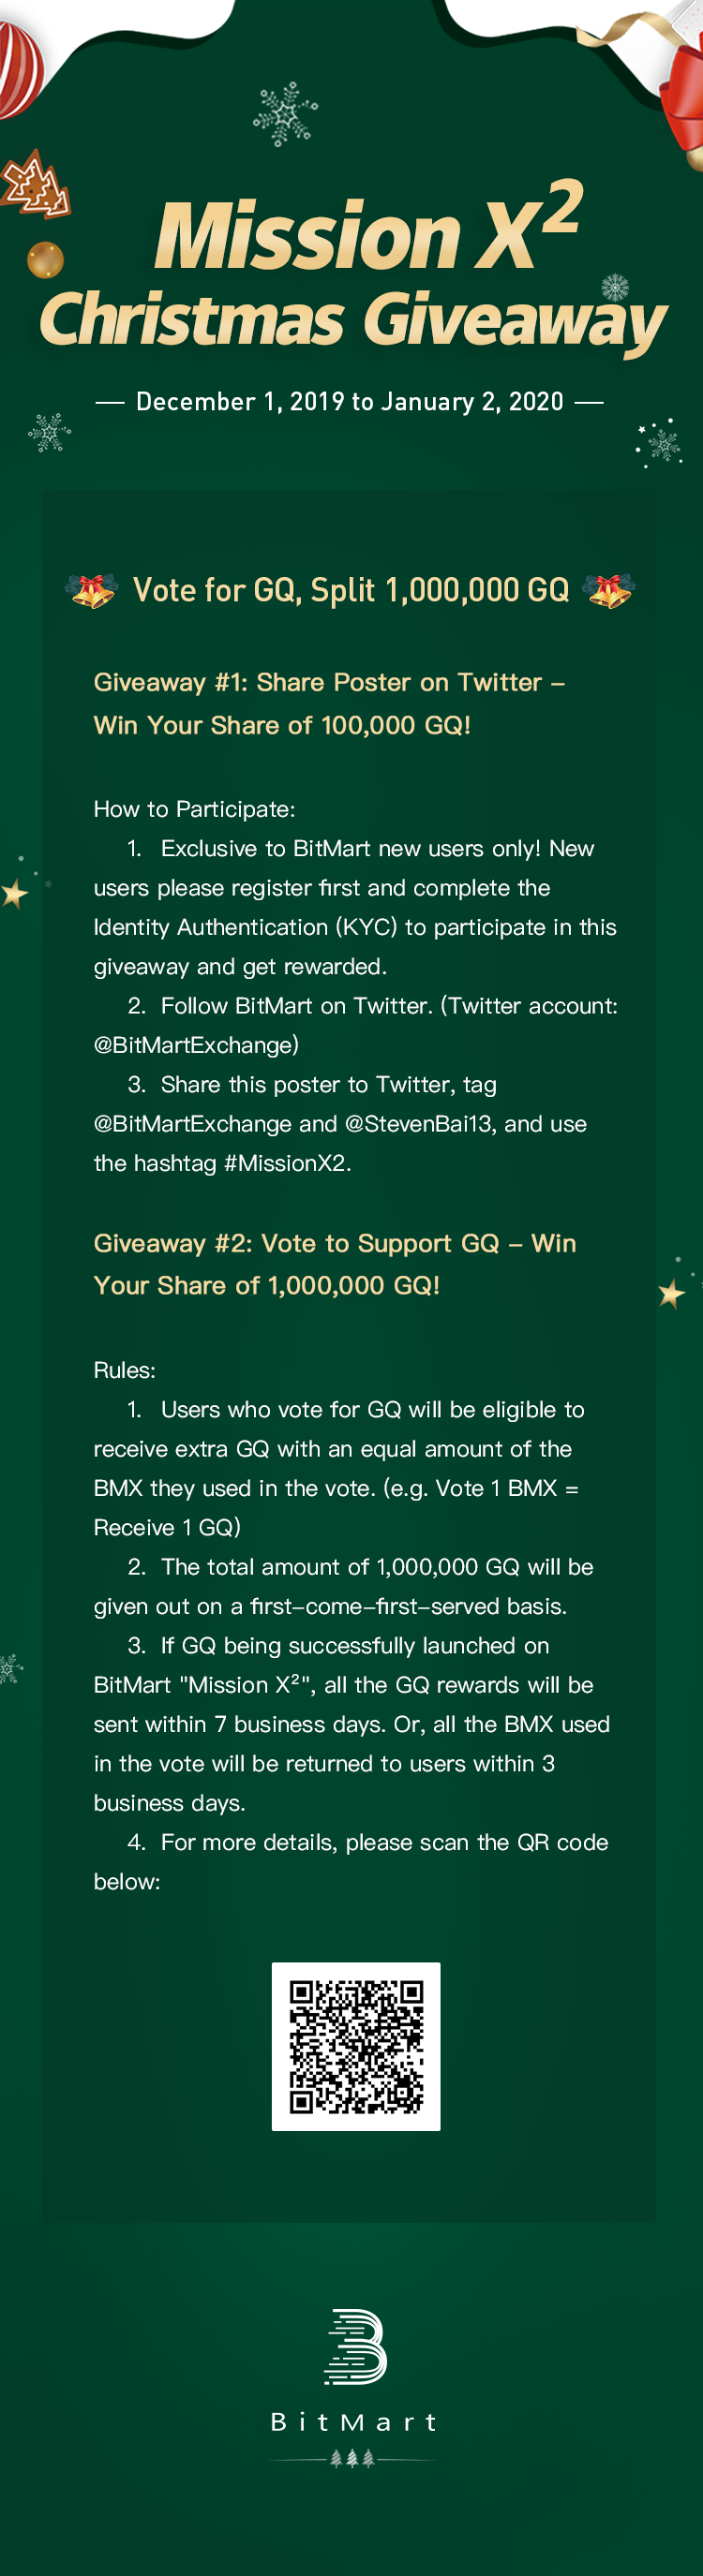 """Christmas At The Mission 2020, December 2 BitMart """"Mission X²"""" Christmas Giveaway — Millions of GQ in Prizes"""